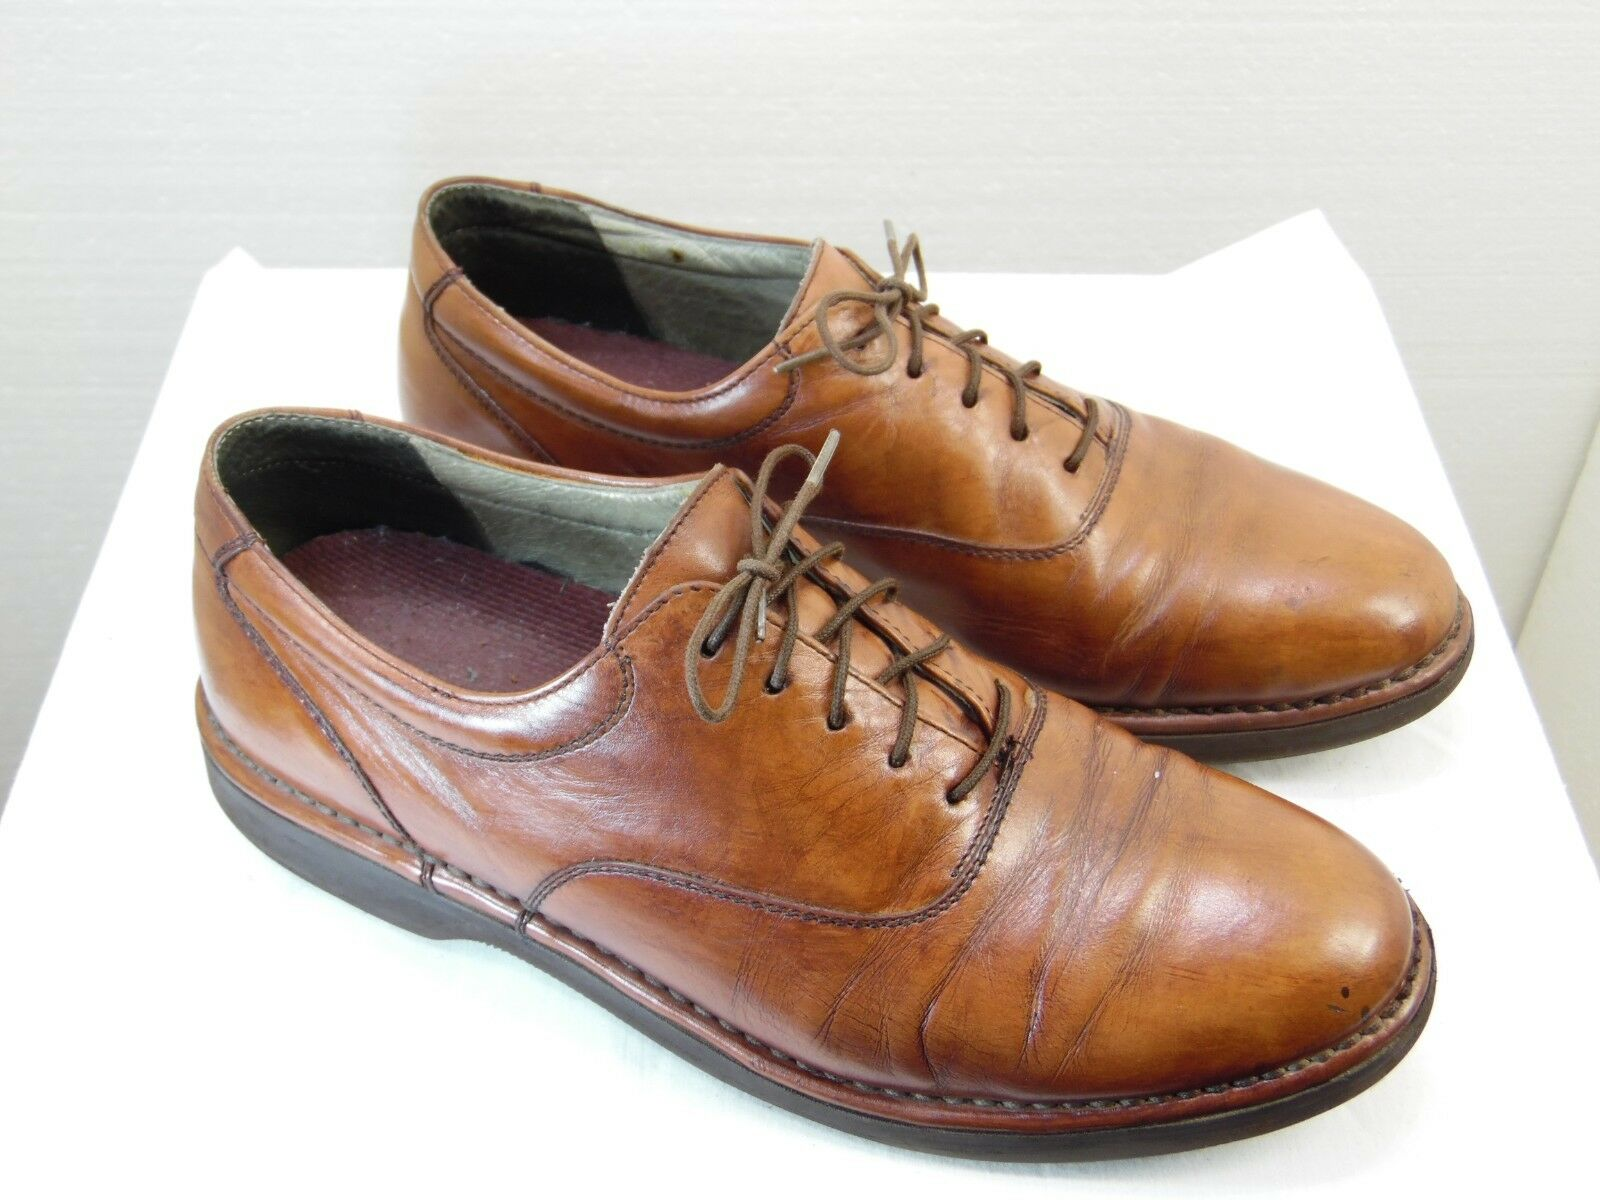 RockPort Dress Sports Mens Dress Shoes Size 8 Leather  Upper Brown    Leather   YR3 1438d6